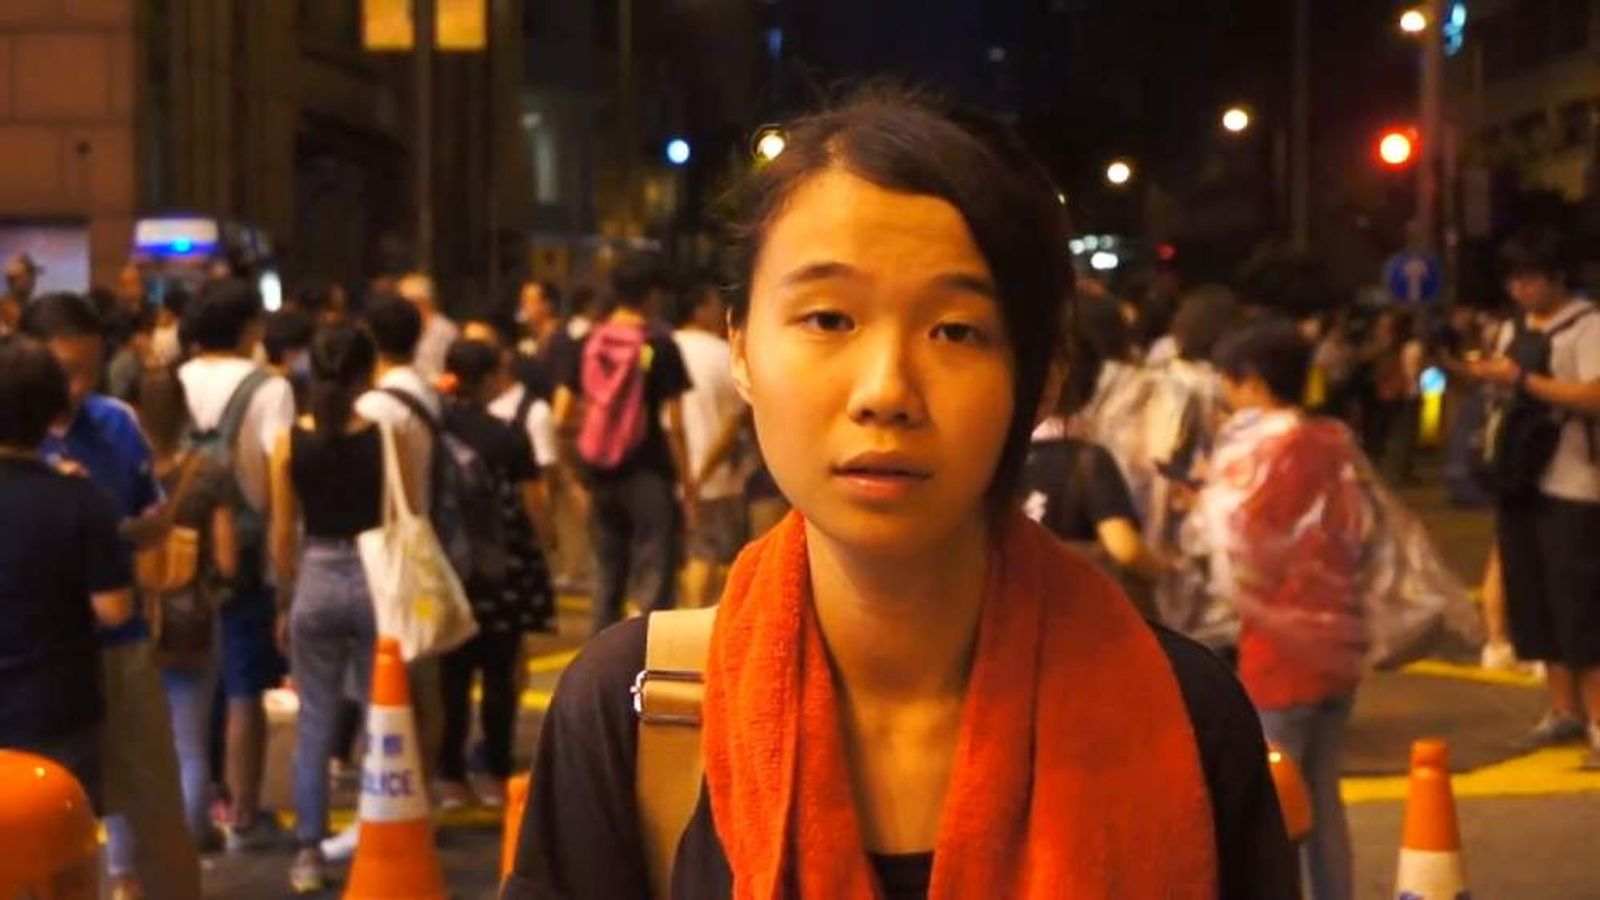 Hong Kong democracy protester Glacier Kwong